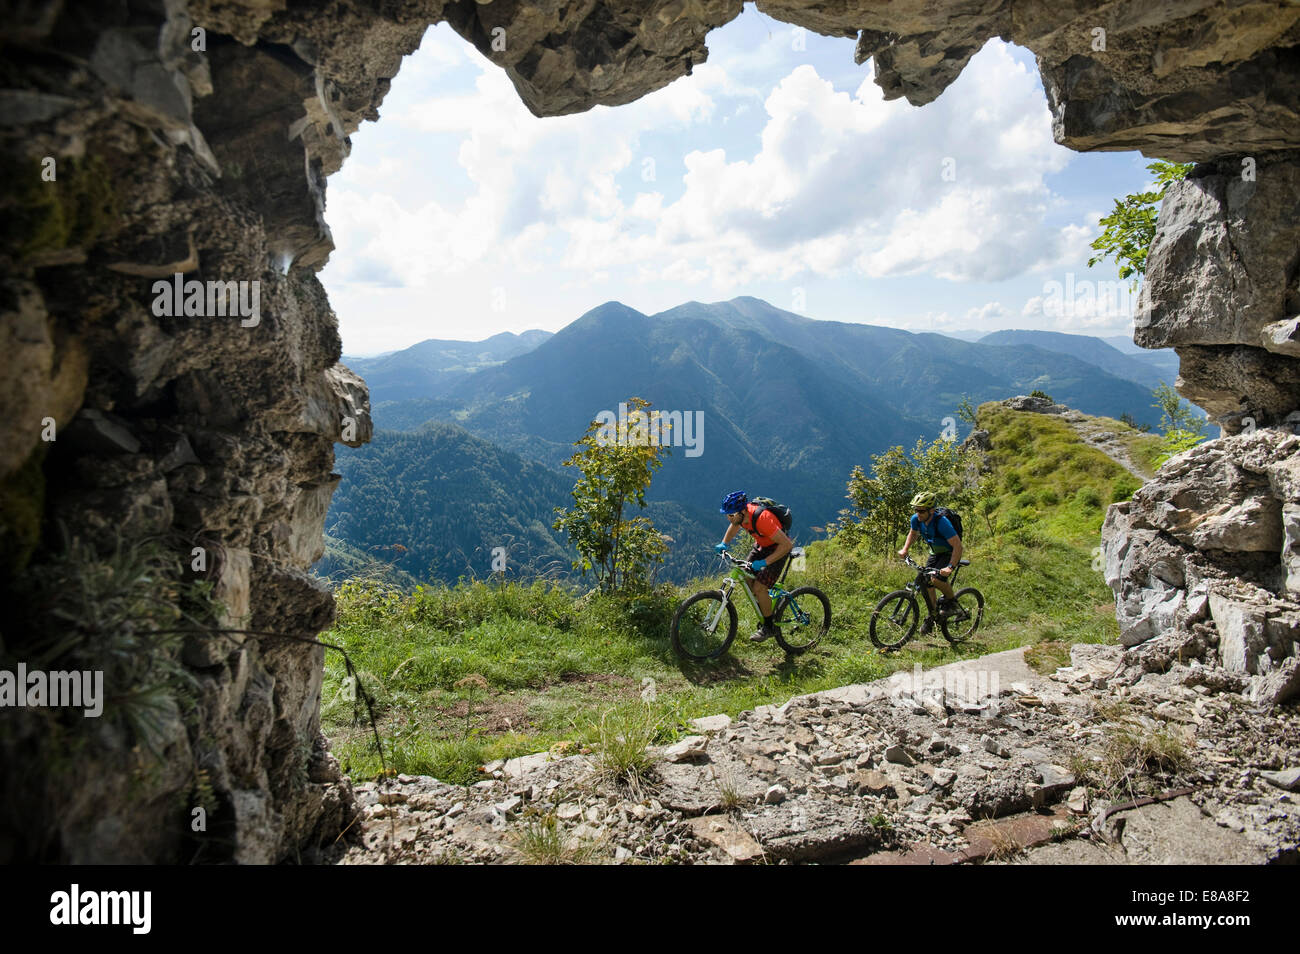 two mountain bikers on the way, Slatnik, Istria, Slovenia - Stock Image